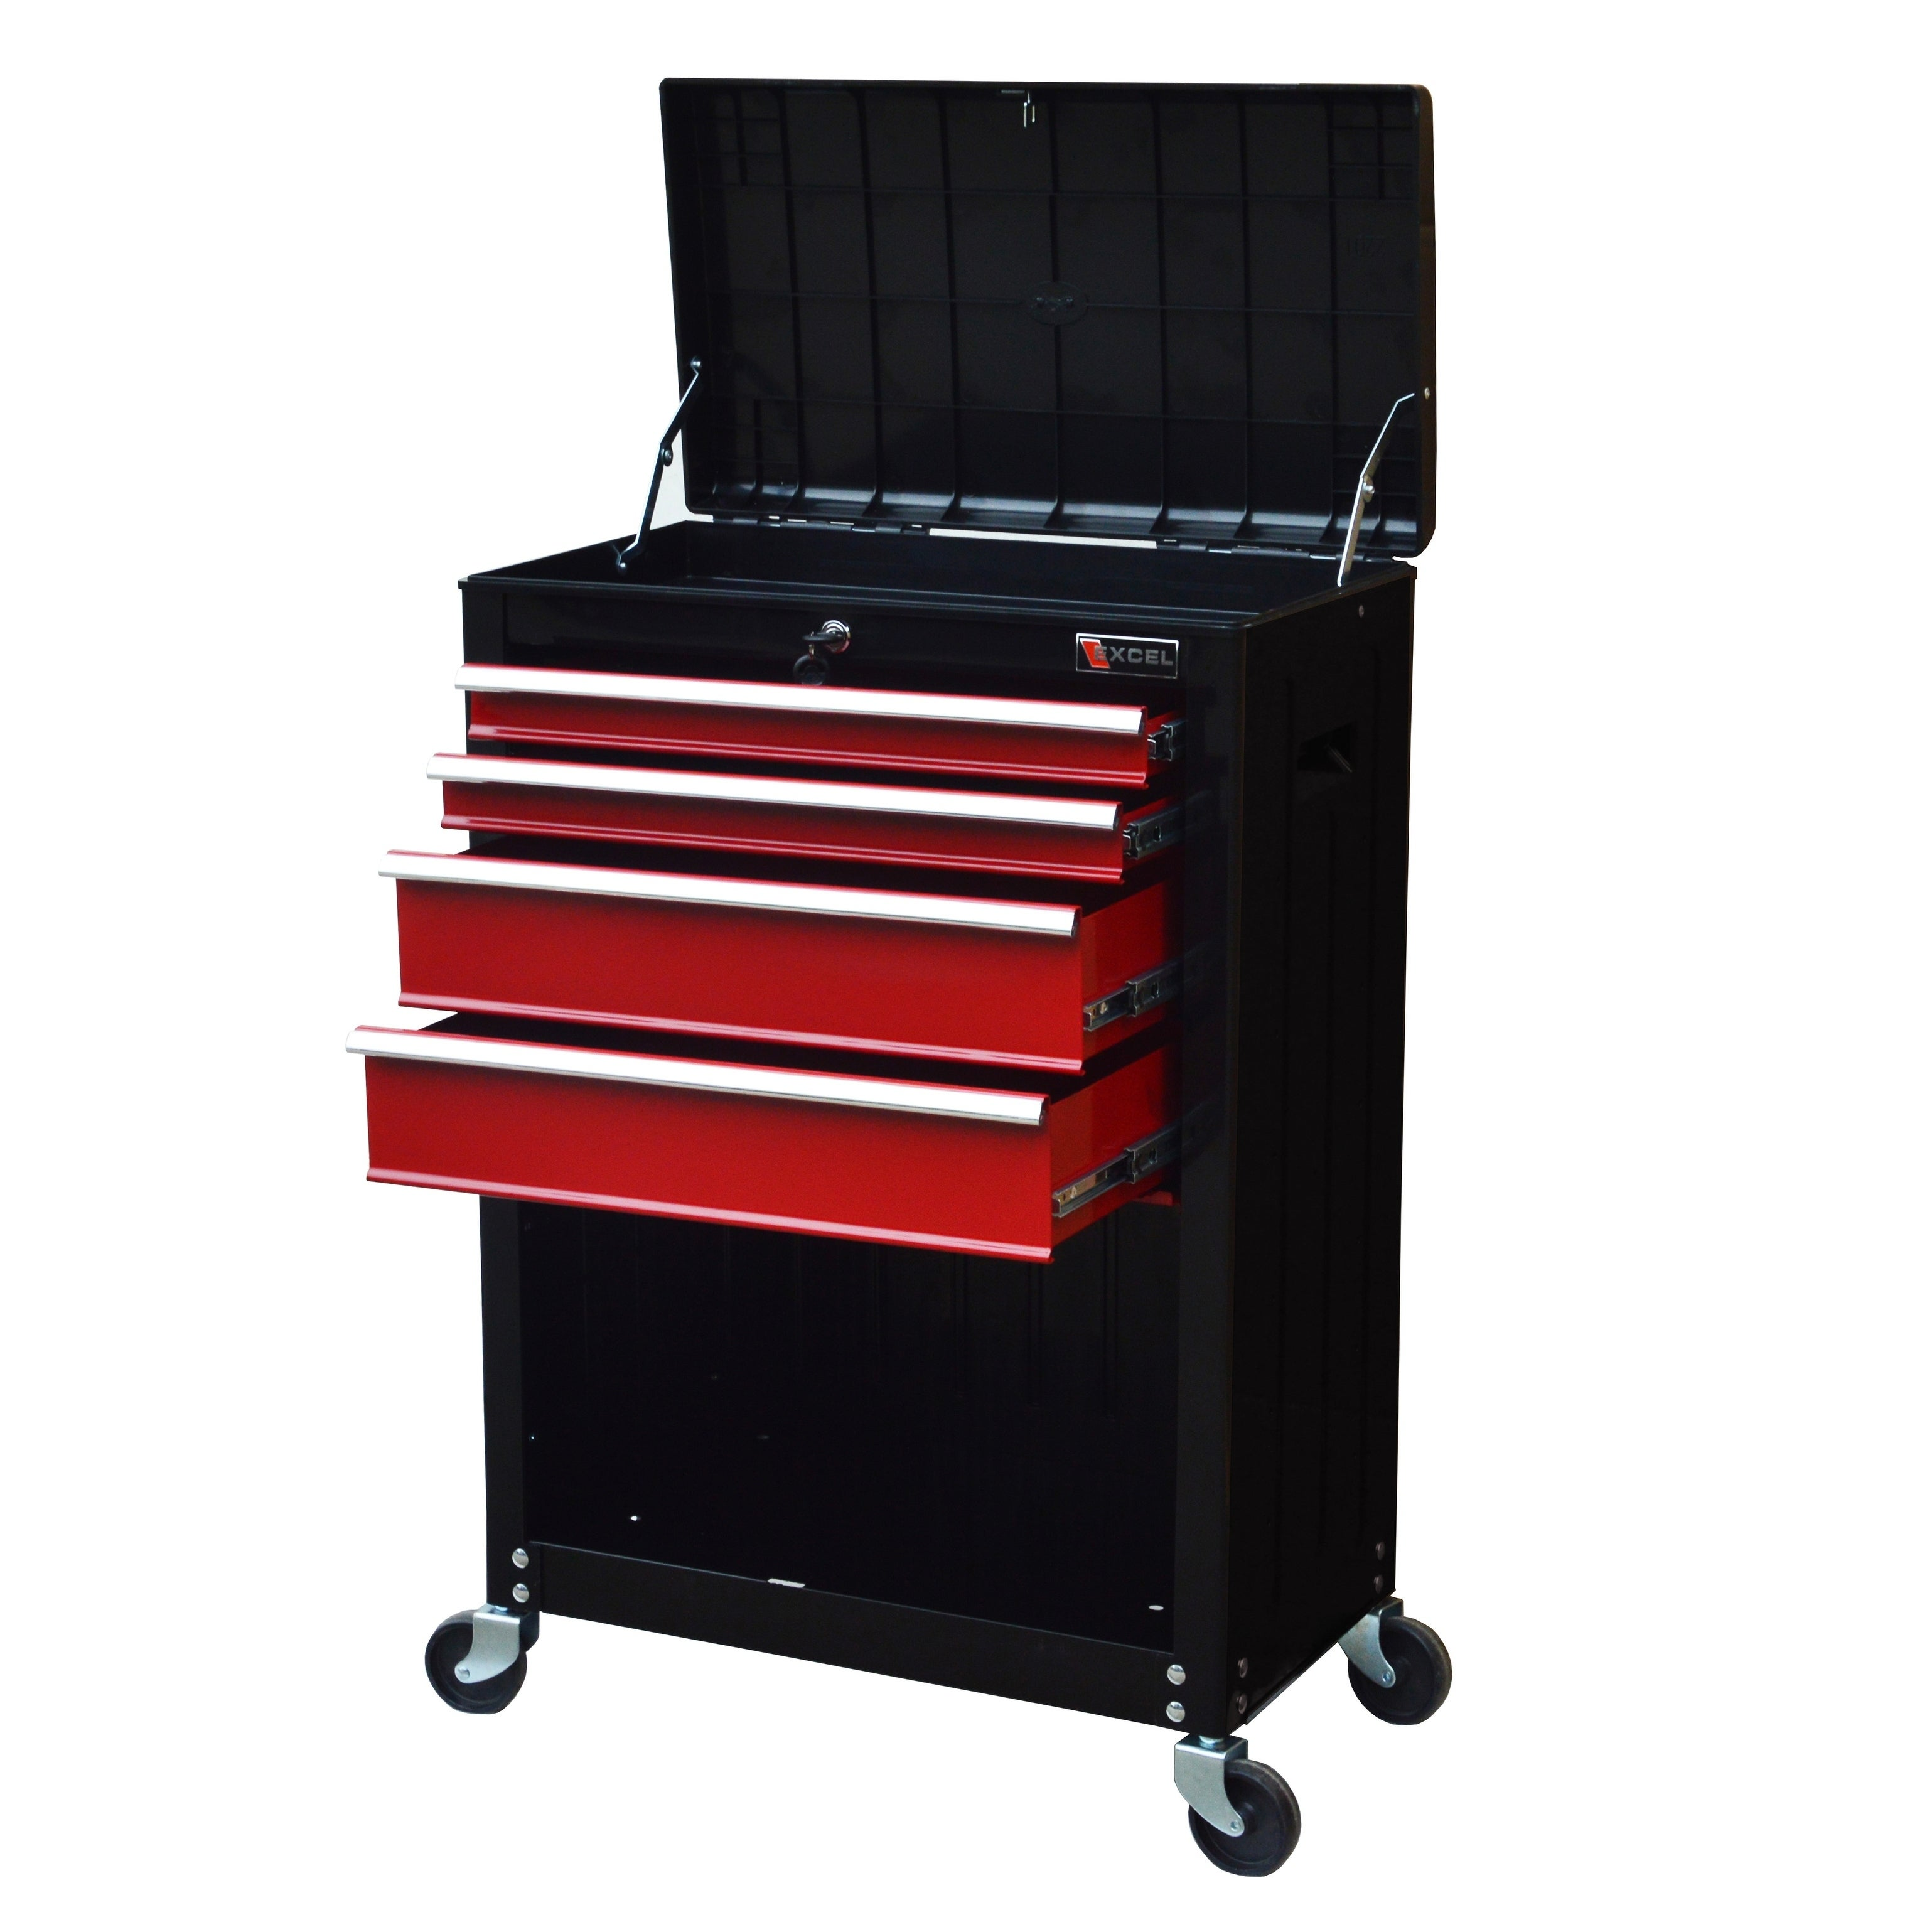 Shop Excel 22  Roller Tool Cabinet with 4 Ball Bearing Drawers - Free Shipping Today - Overstock.com - 19812835  sc 1 st  Overstock.com & Shop Excel 22